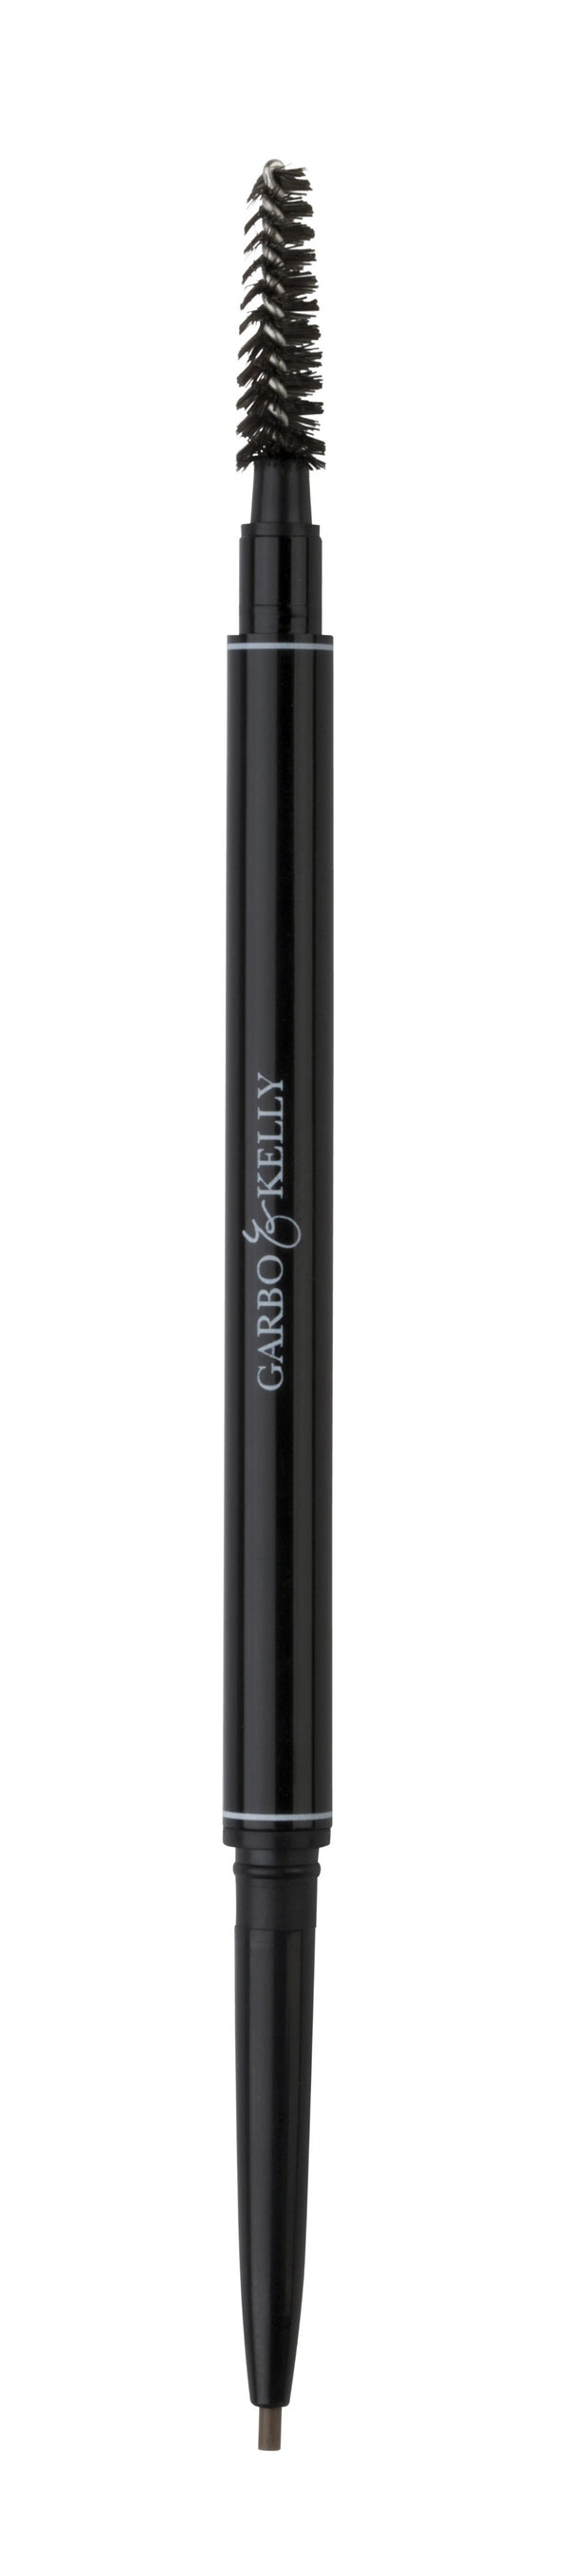 Garbo & Kelly Brow Perfection Pencil